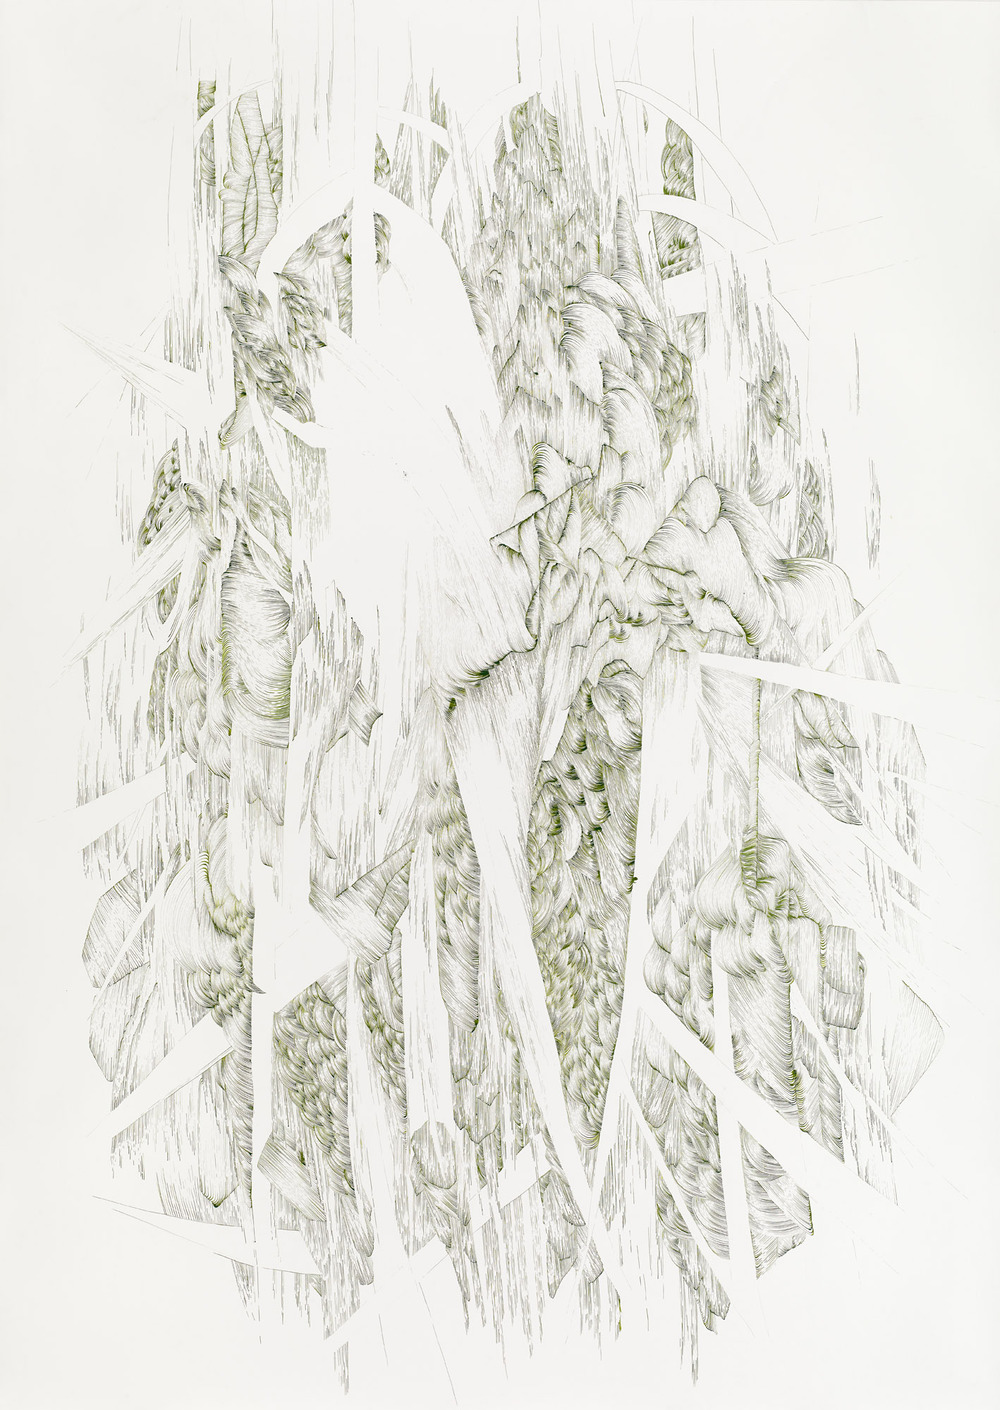 BK P14262   untitled   green ink on paper   270x190cm   2014